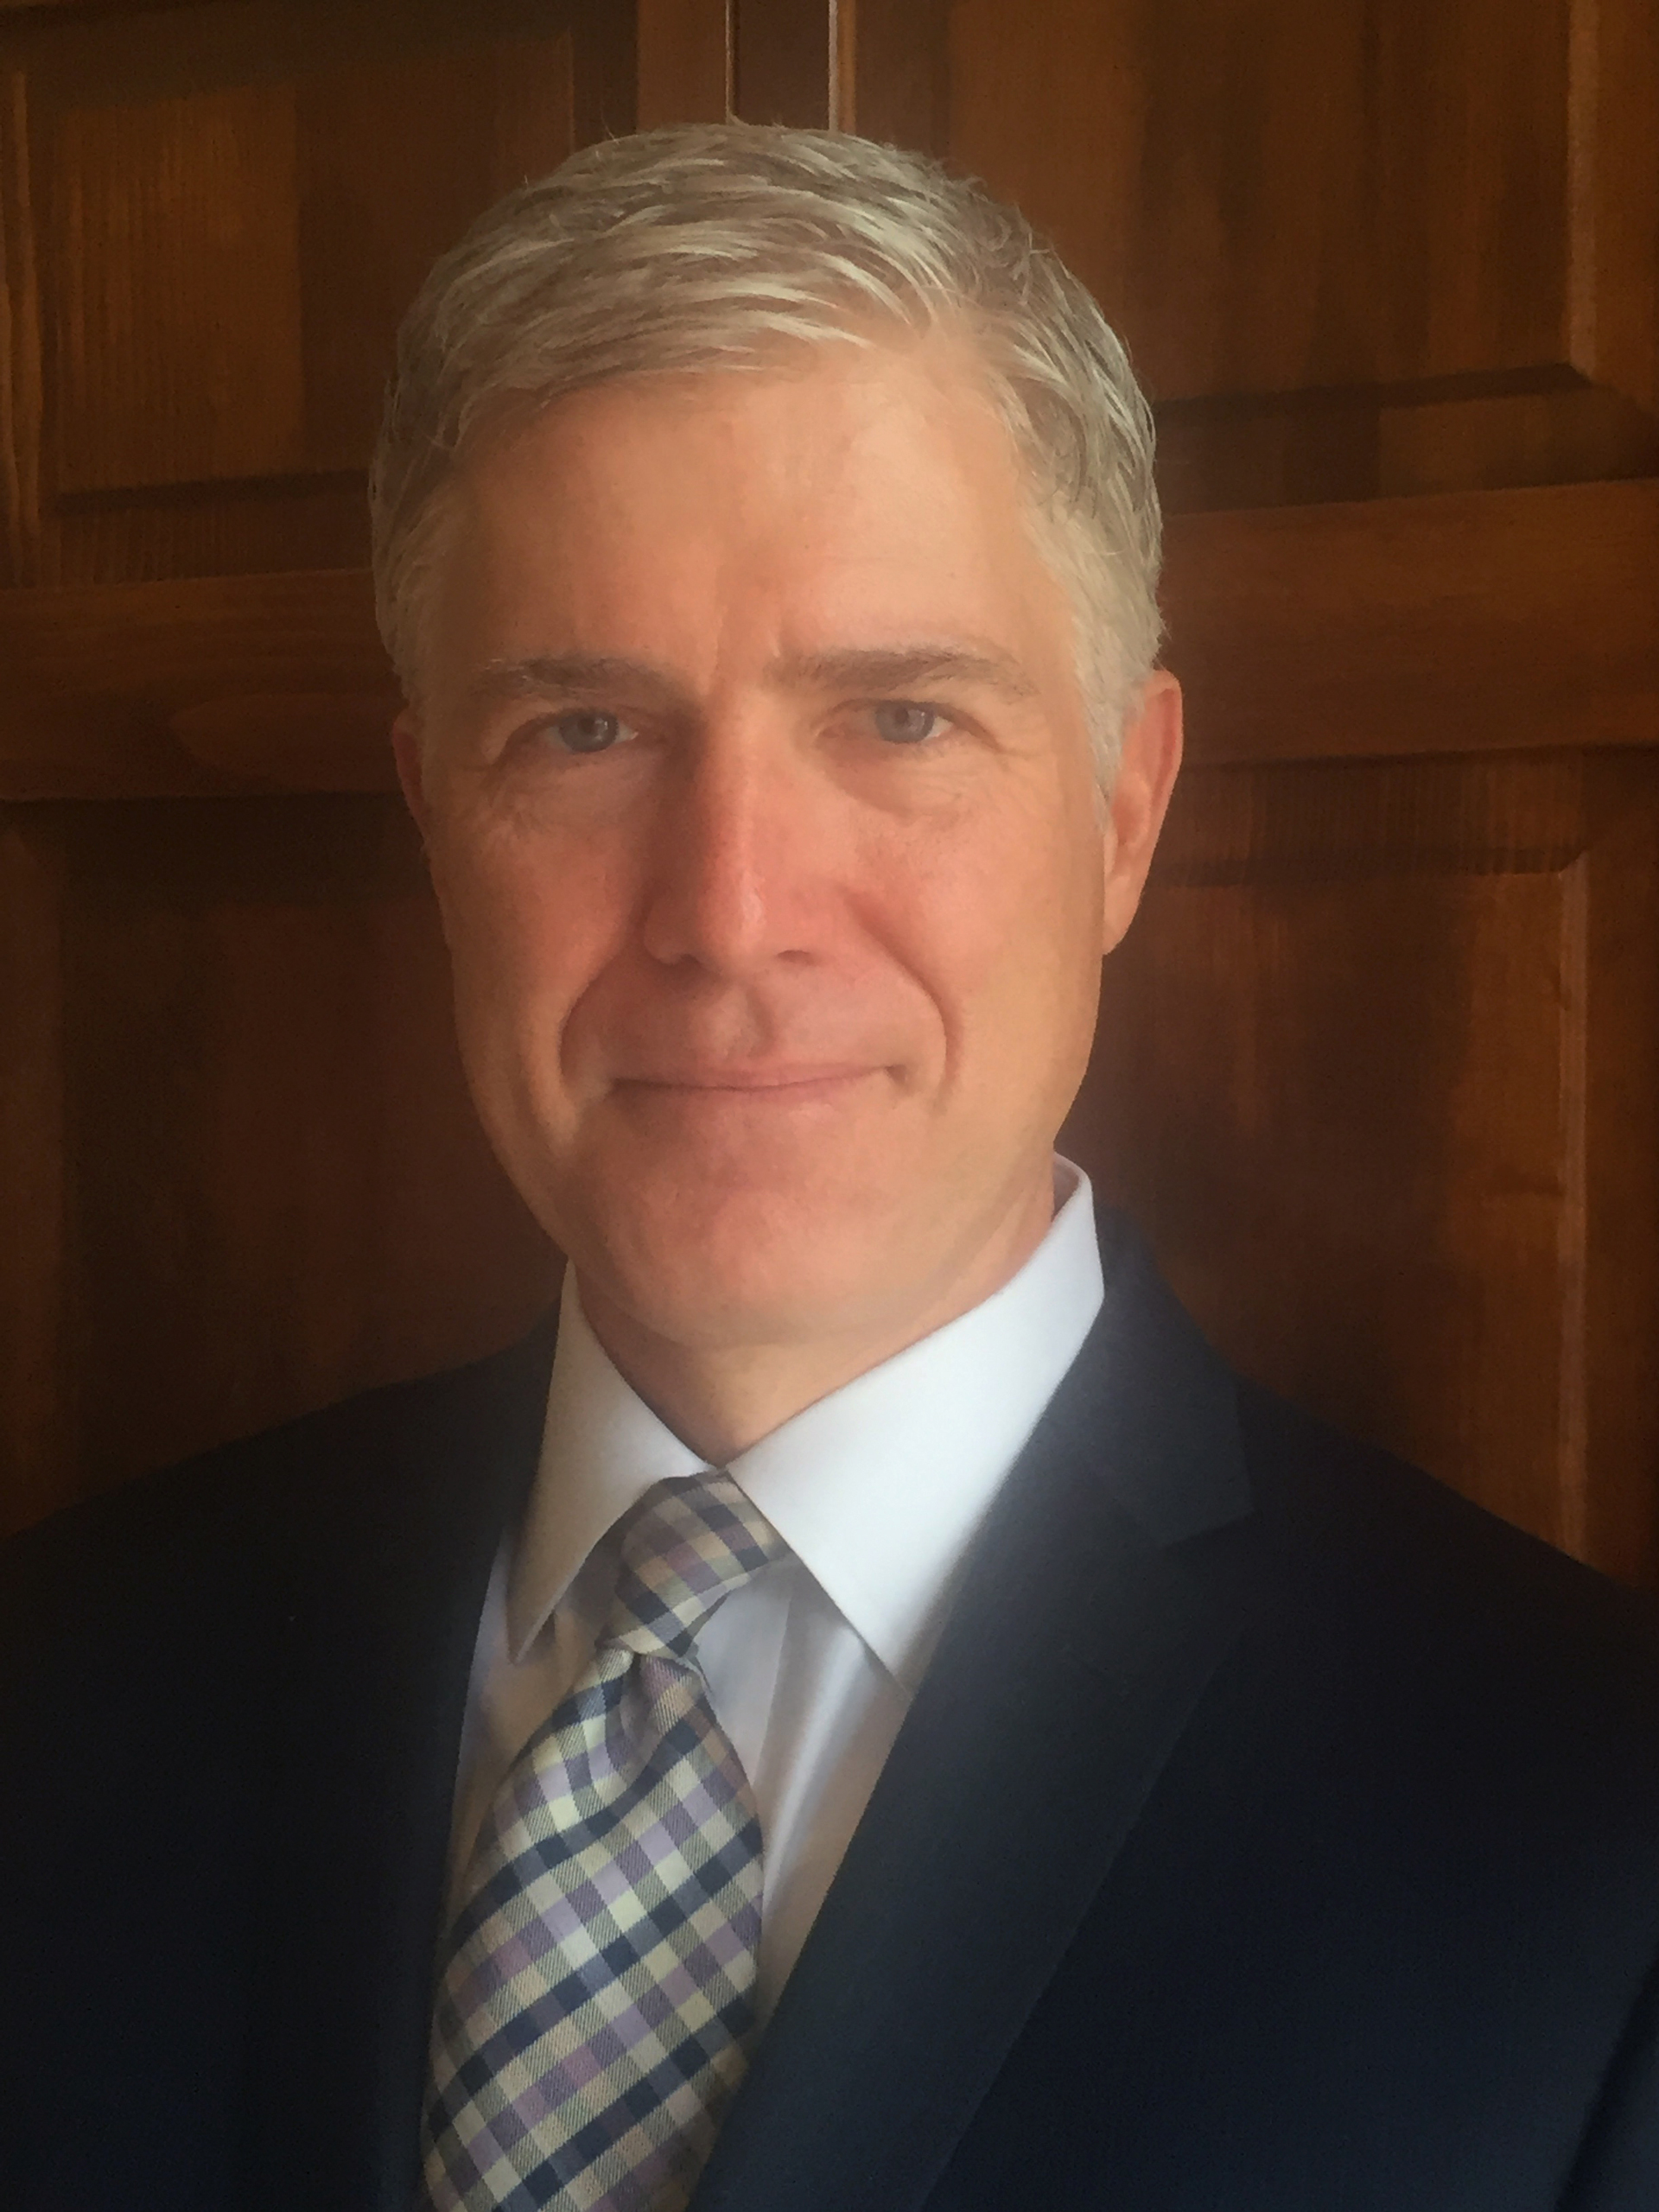 Judge Neil Gorsuch, in an undated photo provided by the 10th U.S. Circuit Court of Appeals.